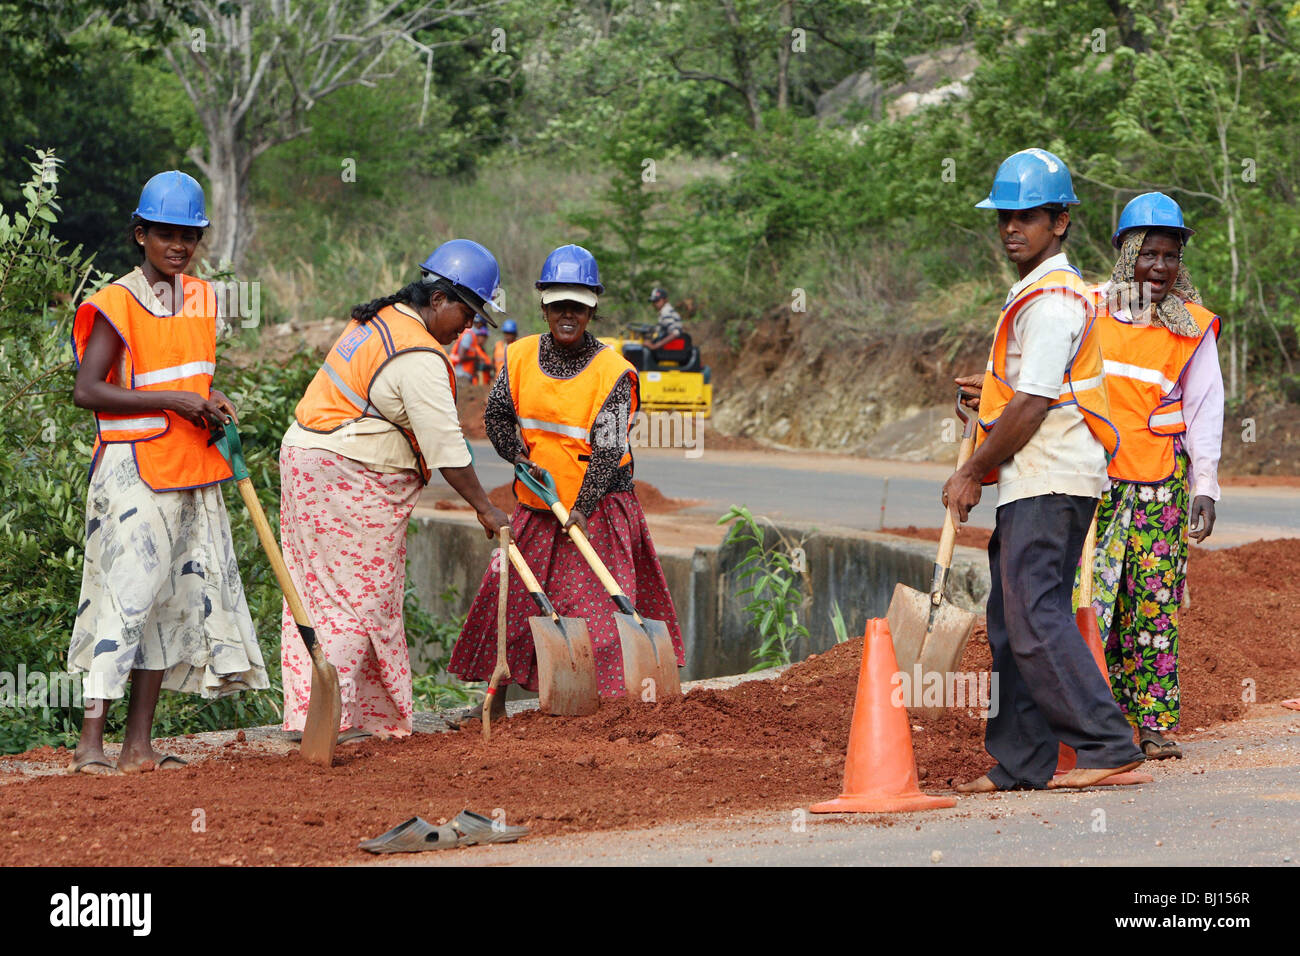 Road construction, Matale, Sri Lanka - Stock Image